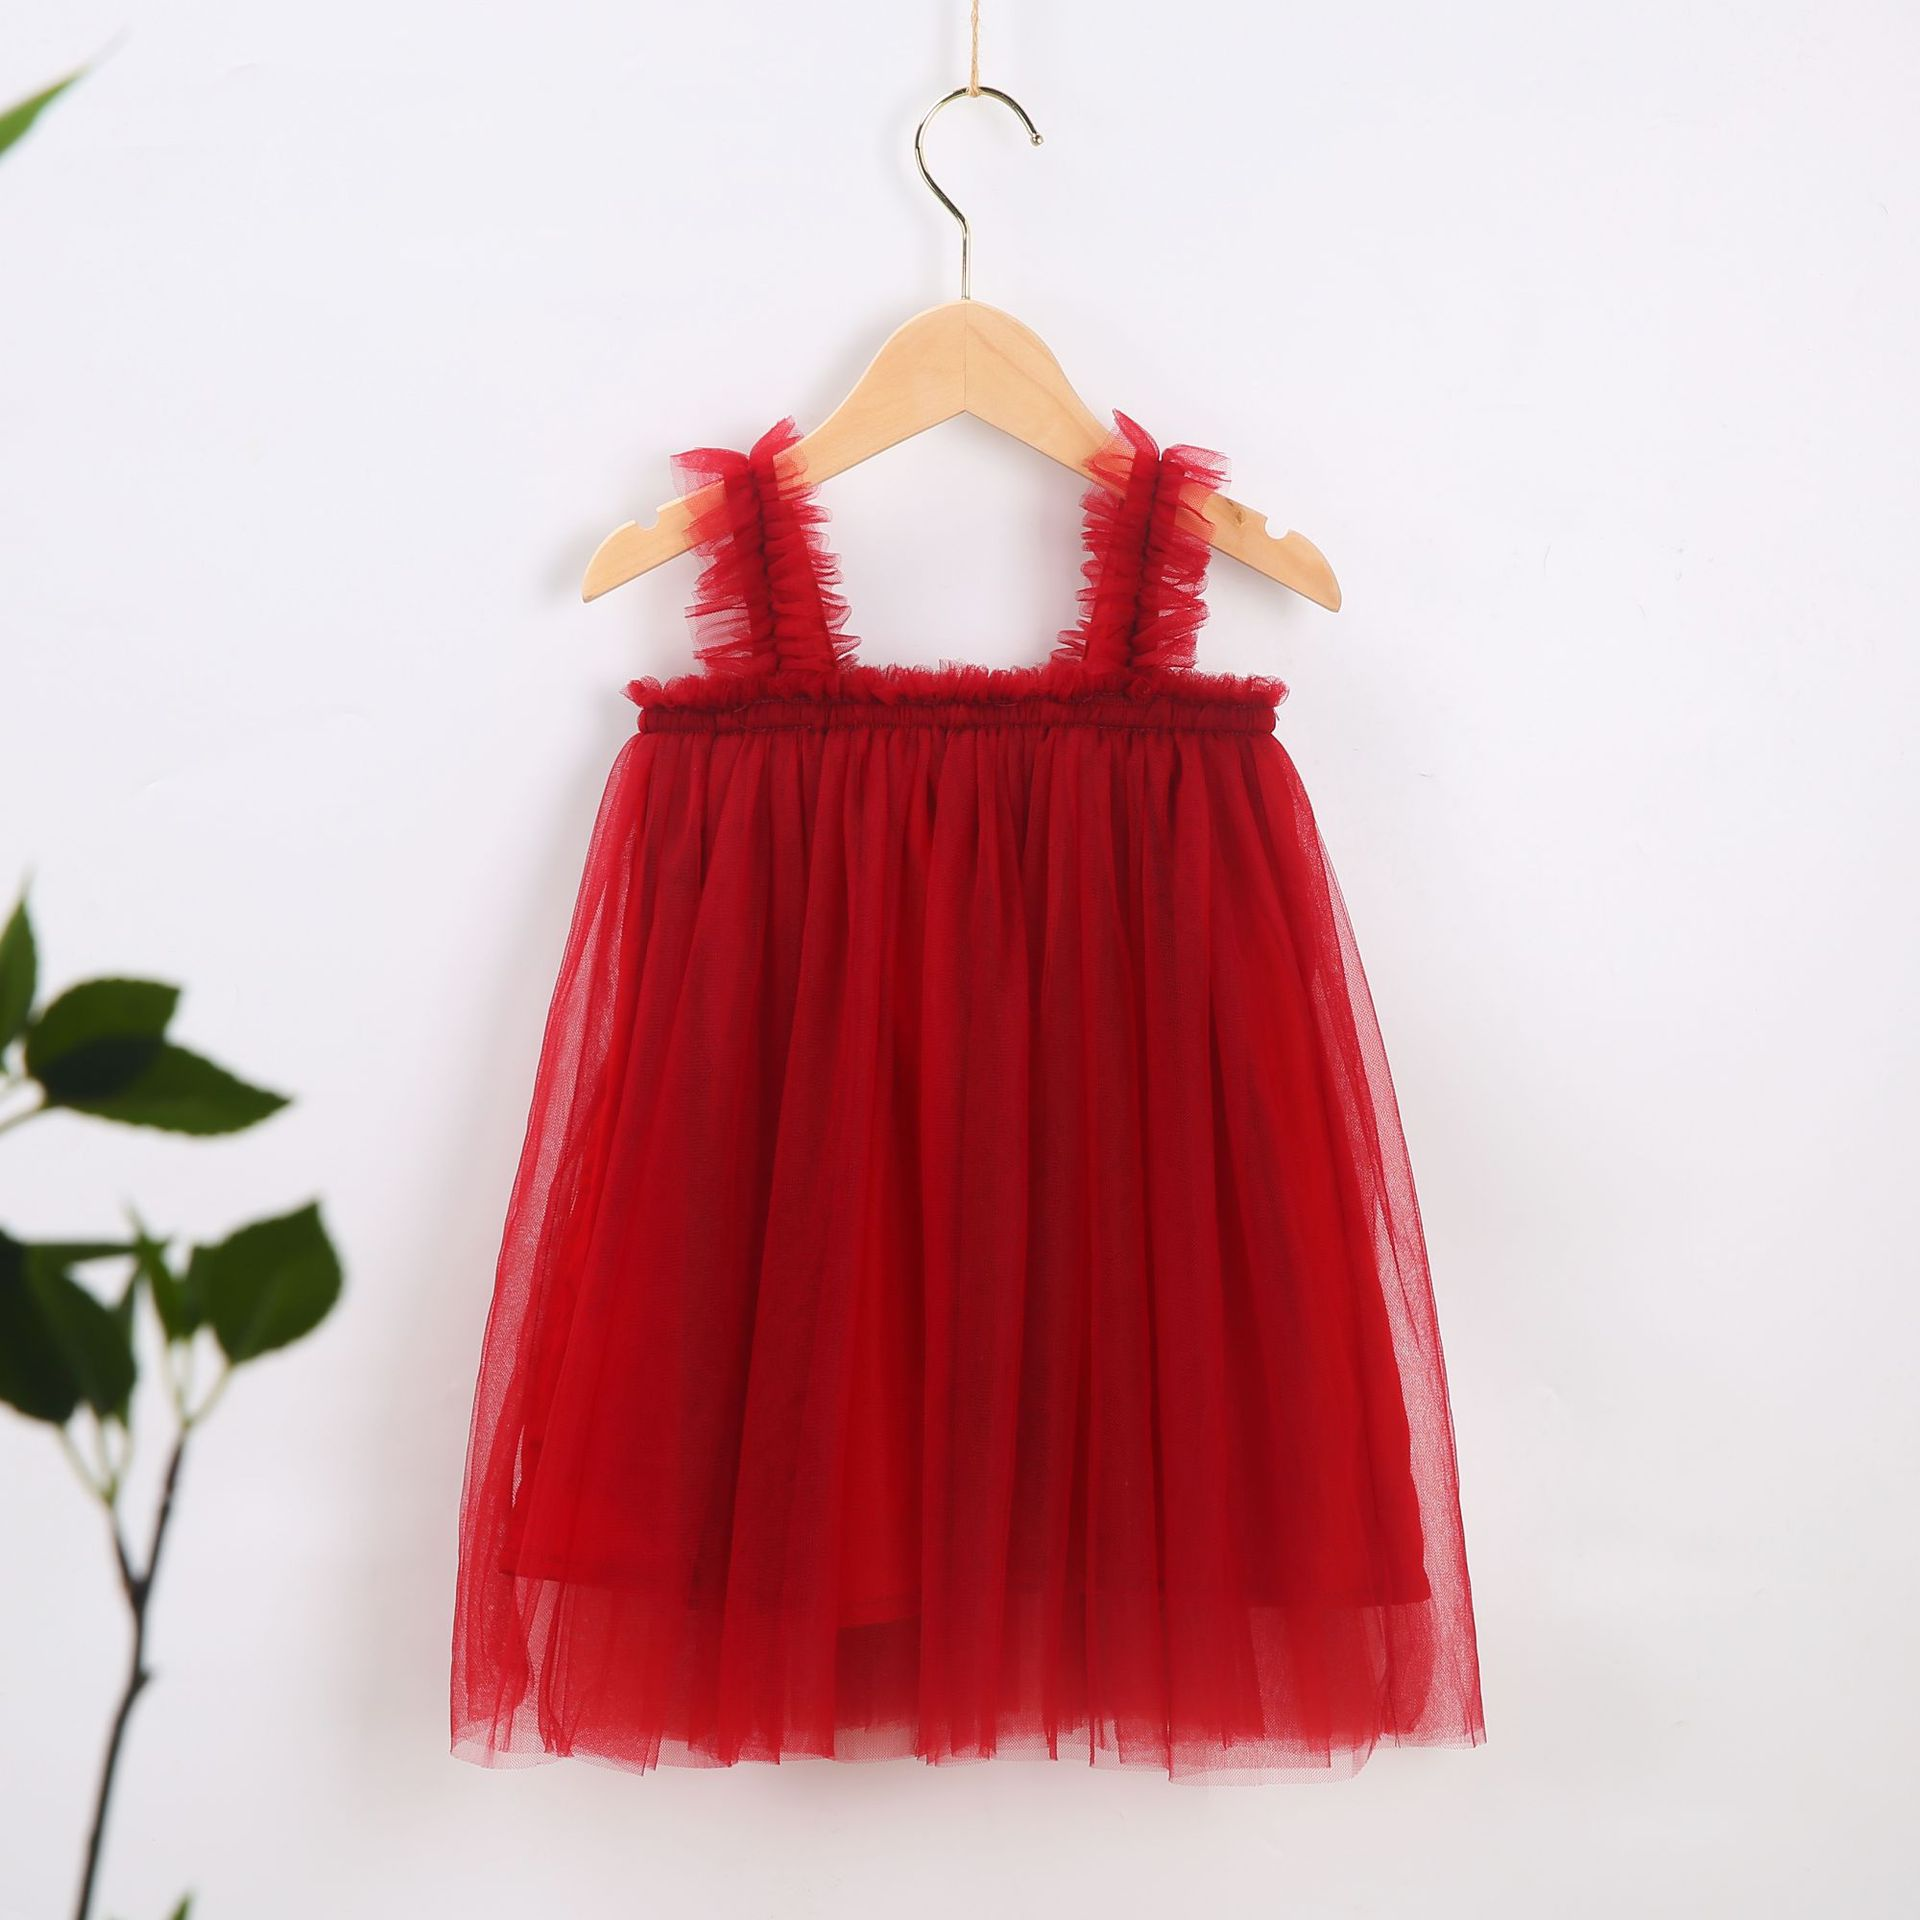 VIDMID Baby Girls summer Dresses Cotton sweet lace Dresses Kids girls vests Clothes children's girls sleeveless clothing 7065 03 3